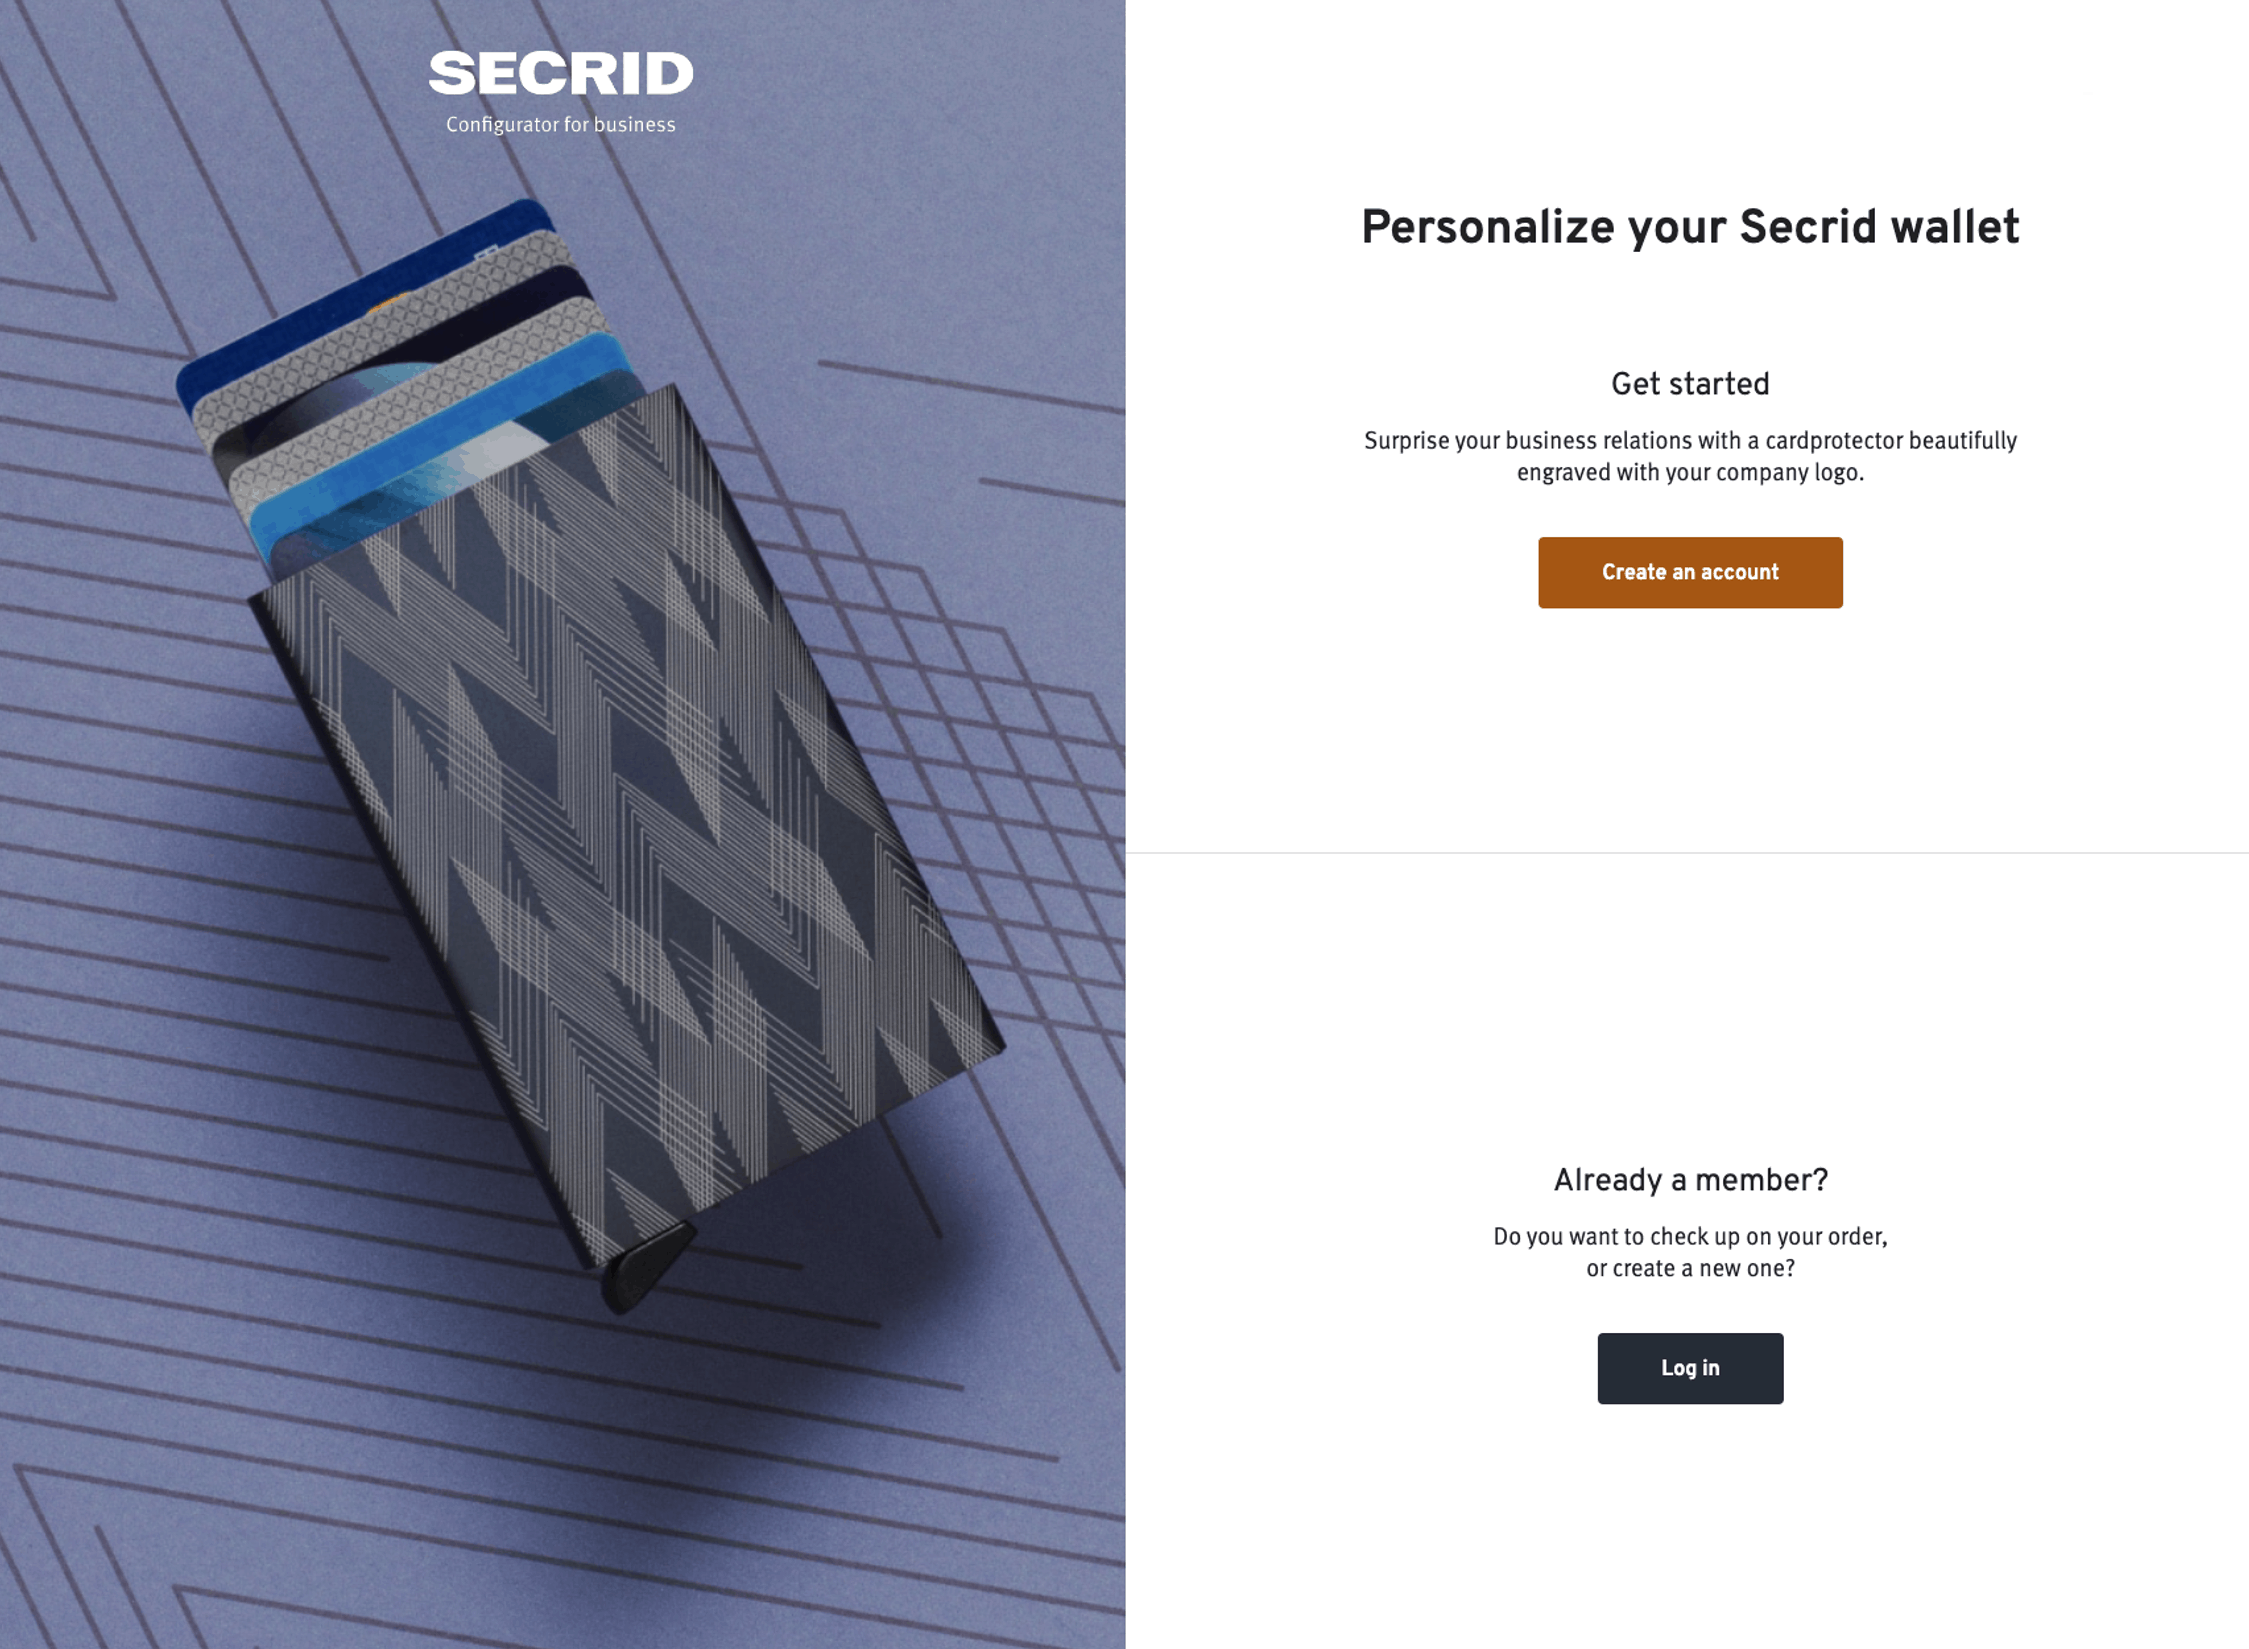 The Secrid portal for corporate gifts.